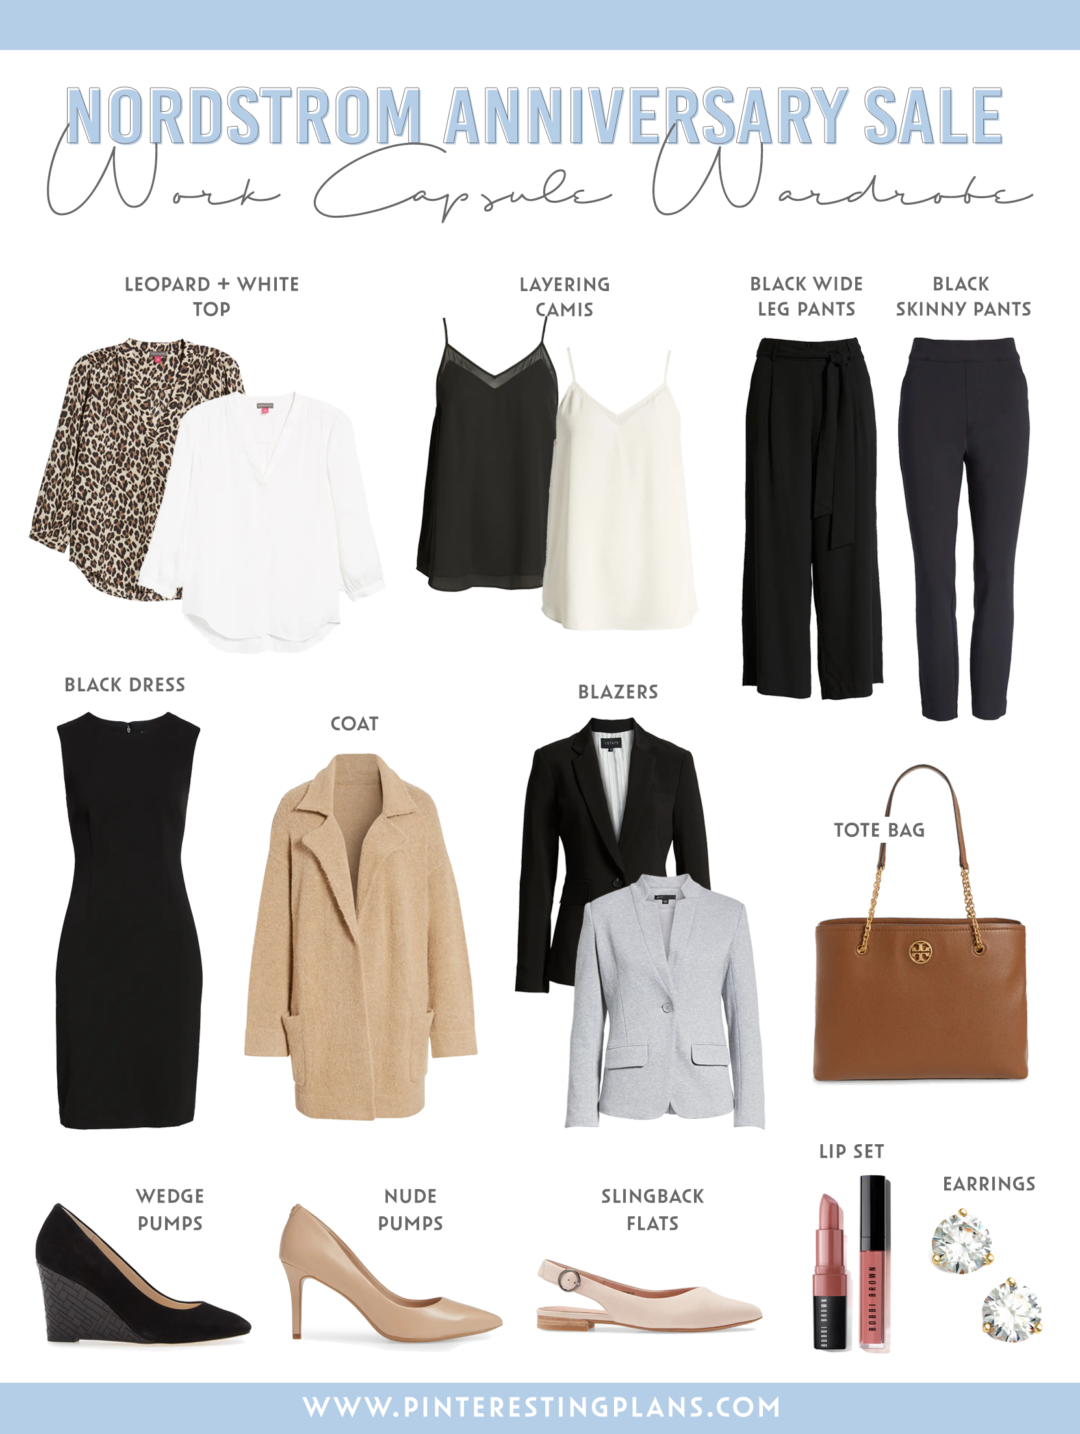 nordstrom anniversary sale 2020 fall work business casual capsule wardrobe 2020 on pinteresting plans fashion blog